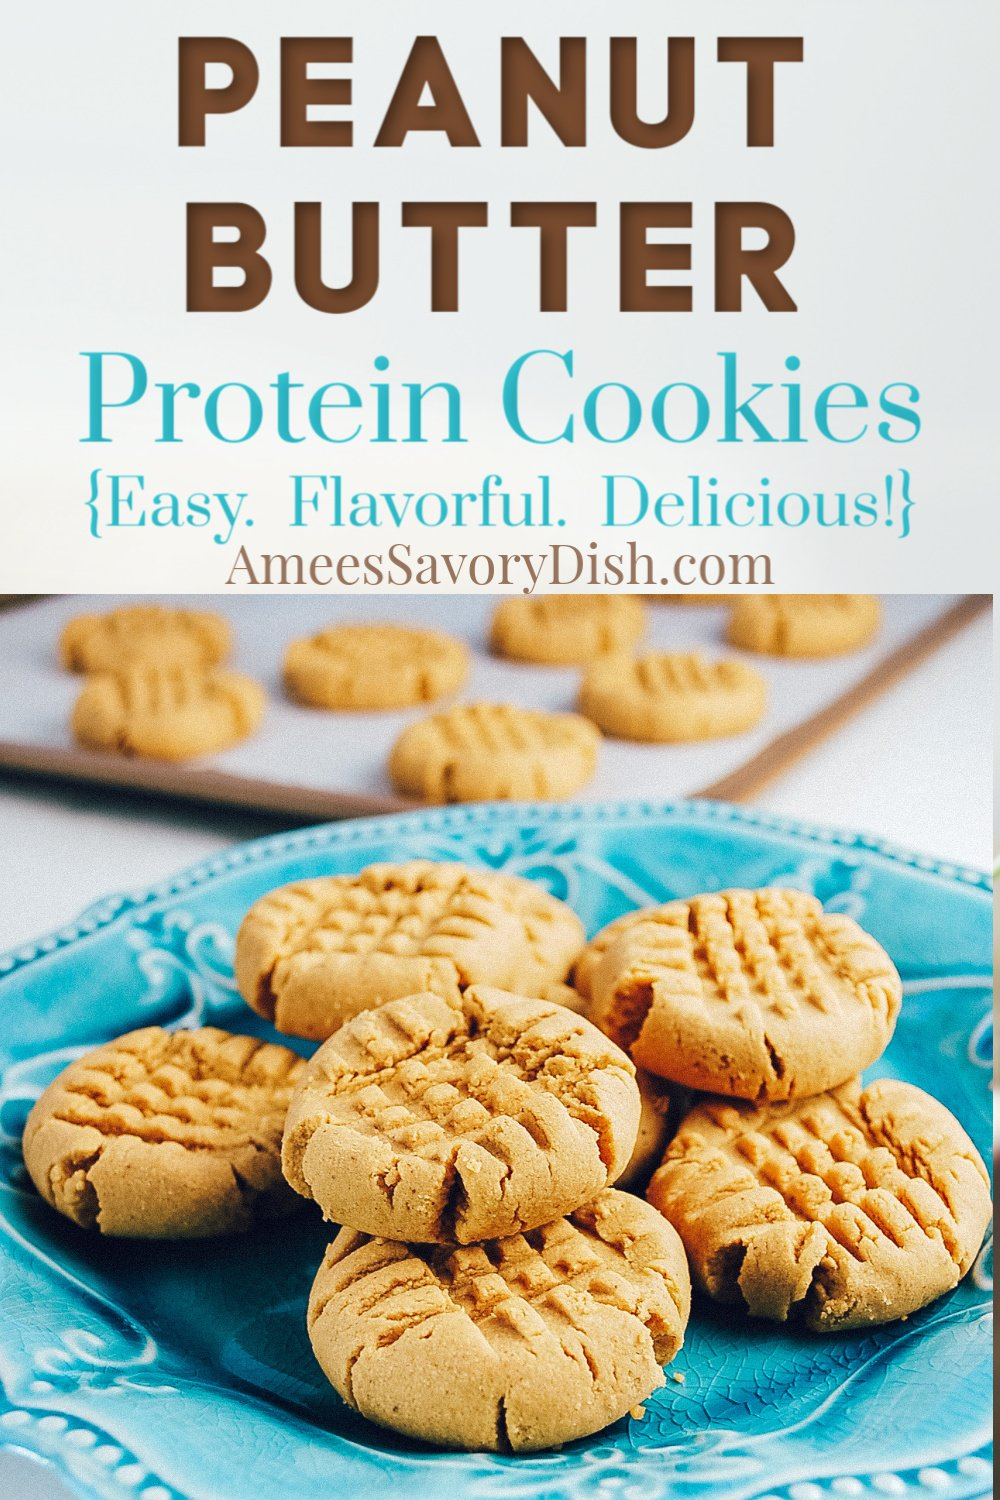 A simple recipe for protein cookies made with peanut butter, egg, maple sugar, and Quest protein powder. Easy and delicious! #proteincookies #questproteindesserts #questproteinrecipes #proteindesserts #healthiercookies via @Ameecooks